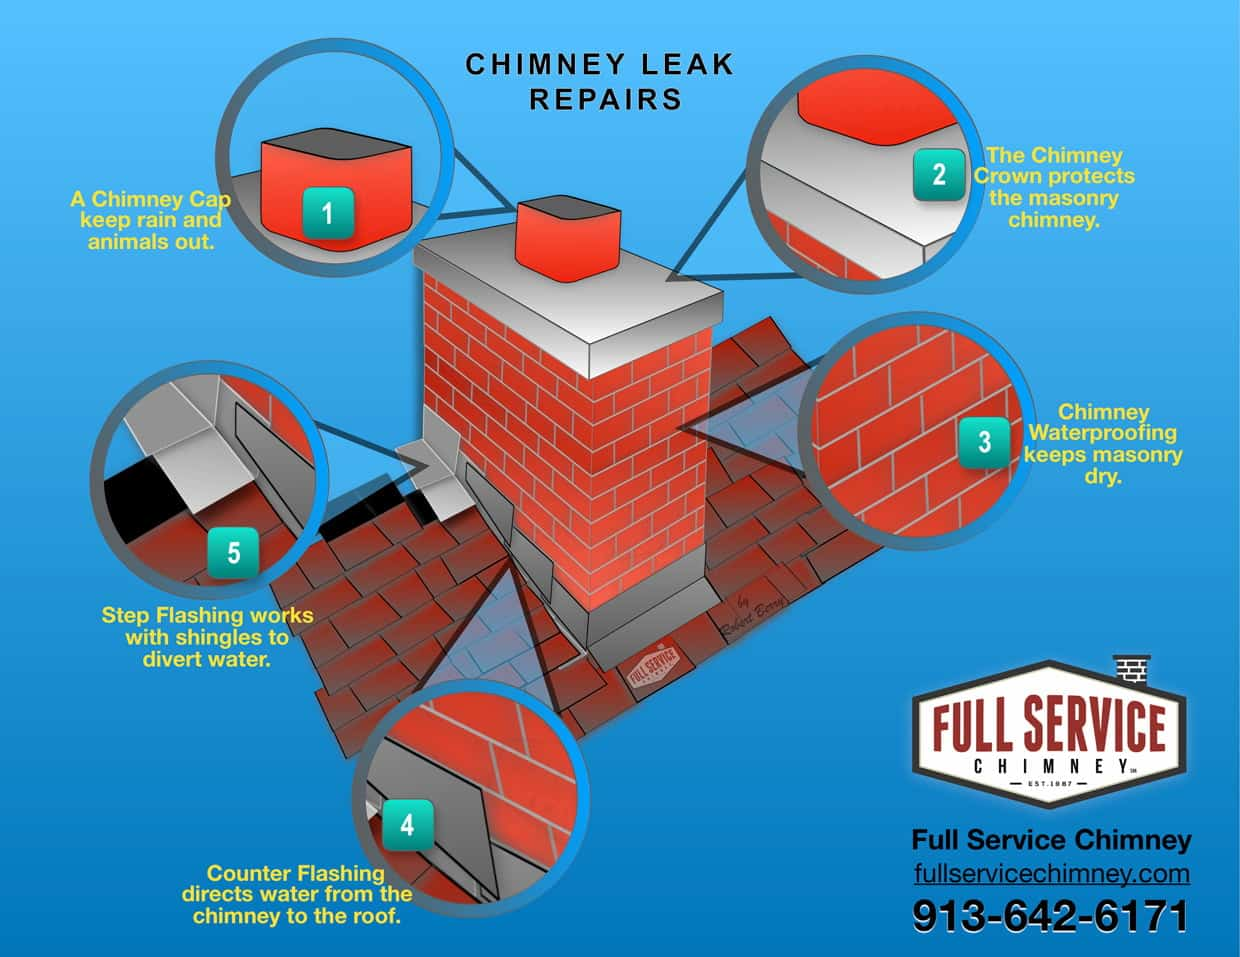 Chimney Leak Repair Diagram